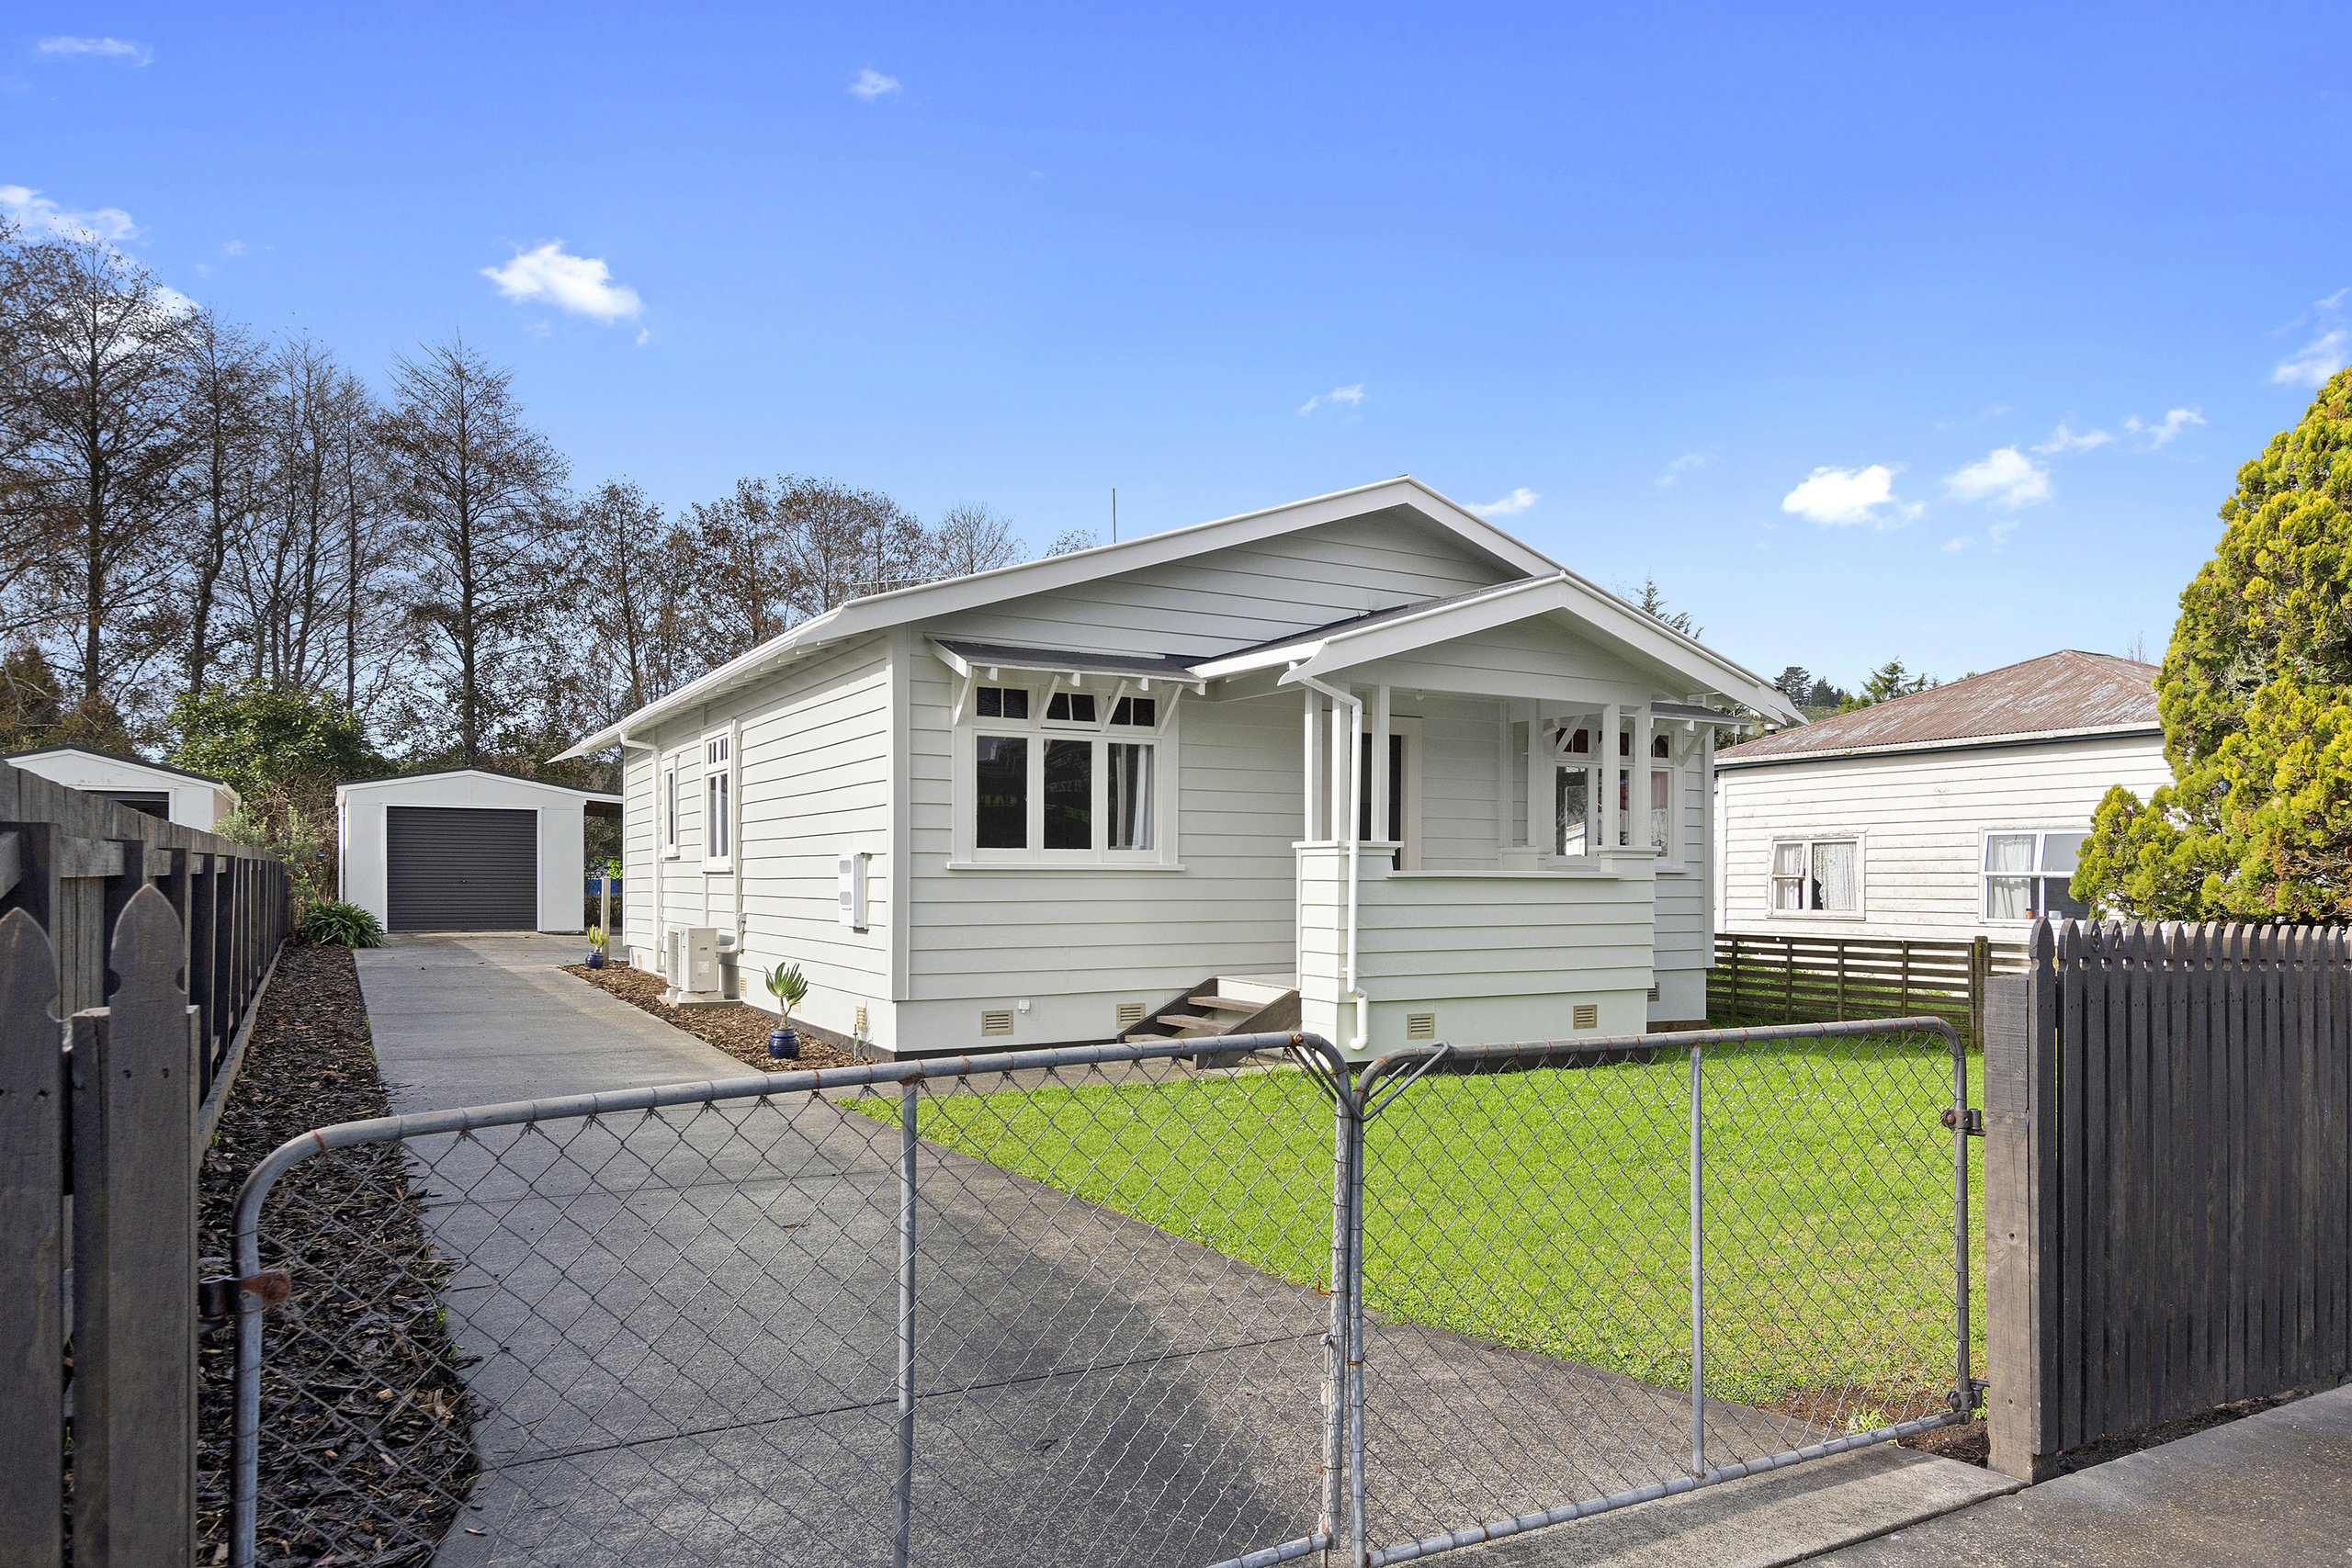 Refurbished Beauty - Interest early $400,000's